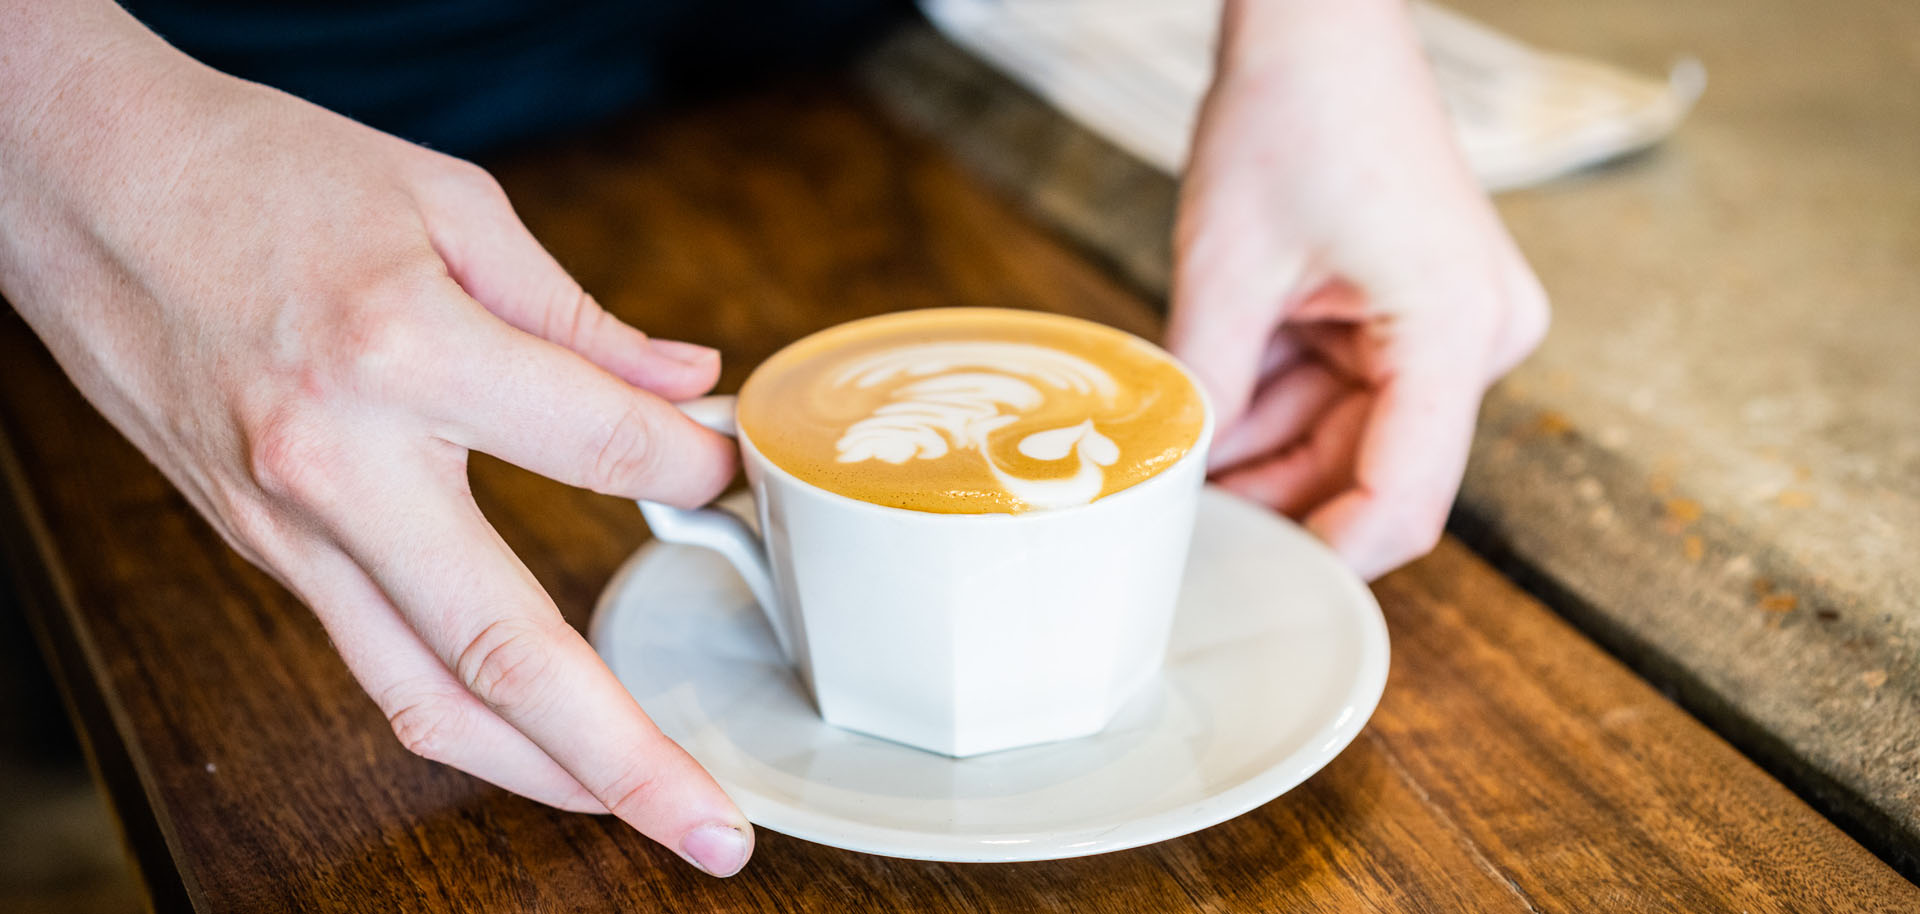 A person holds a latte in a white mug at Cirque Coffee in Tulsa's Pearl District